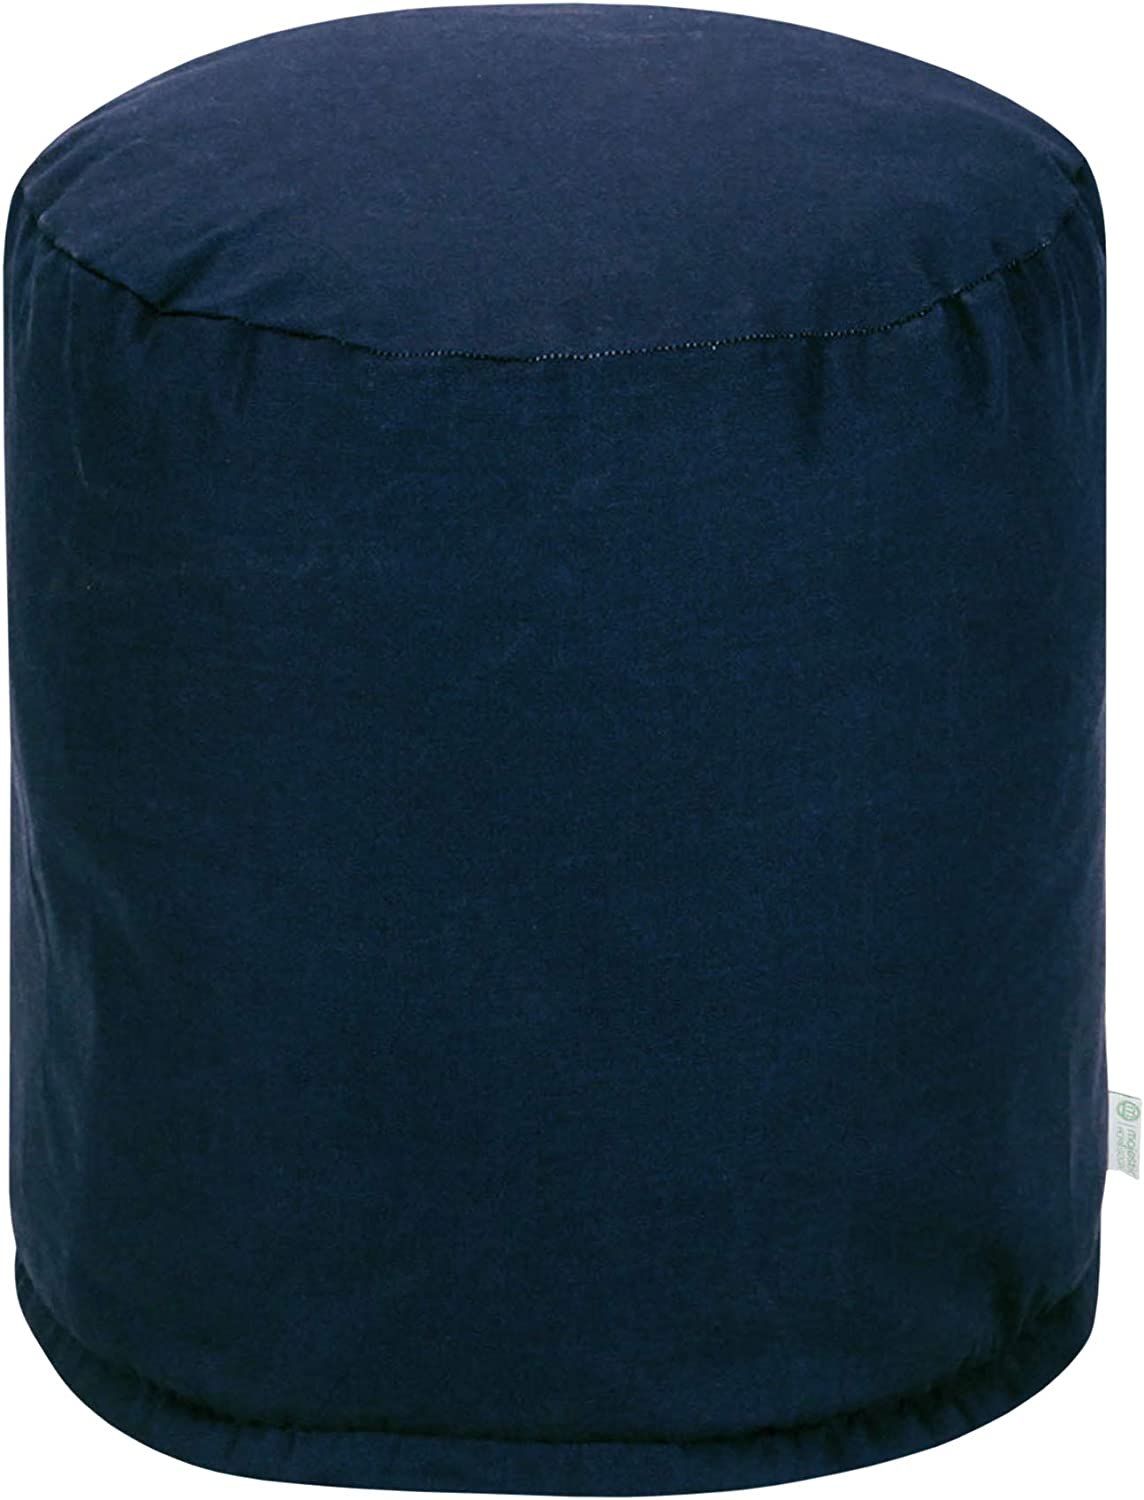 Majestic Home Goods Navy Blue Solid Indoor//Outdoor Bean Bag Ottoman Pouf 16 L x 16 W x 17 H